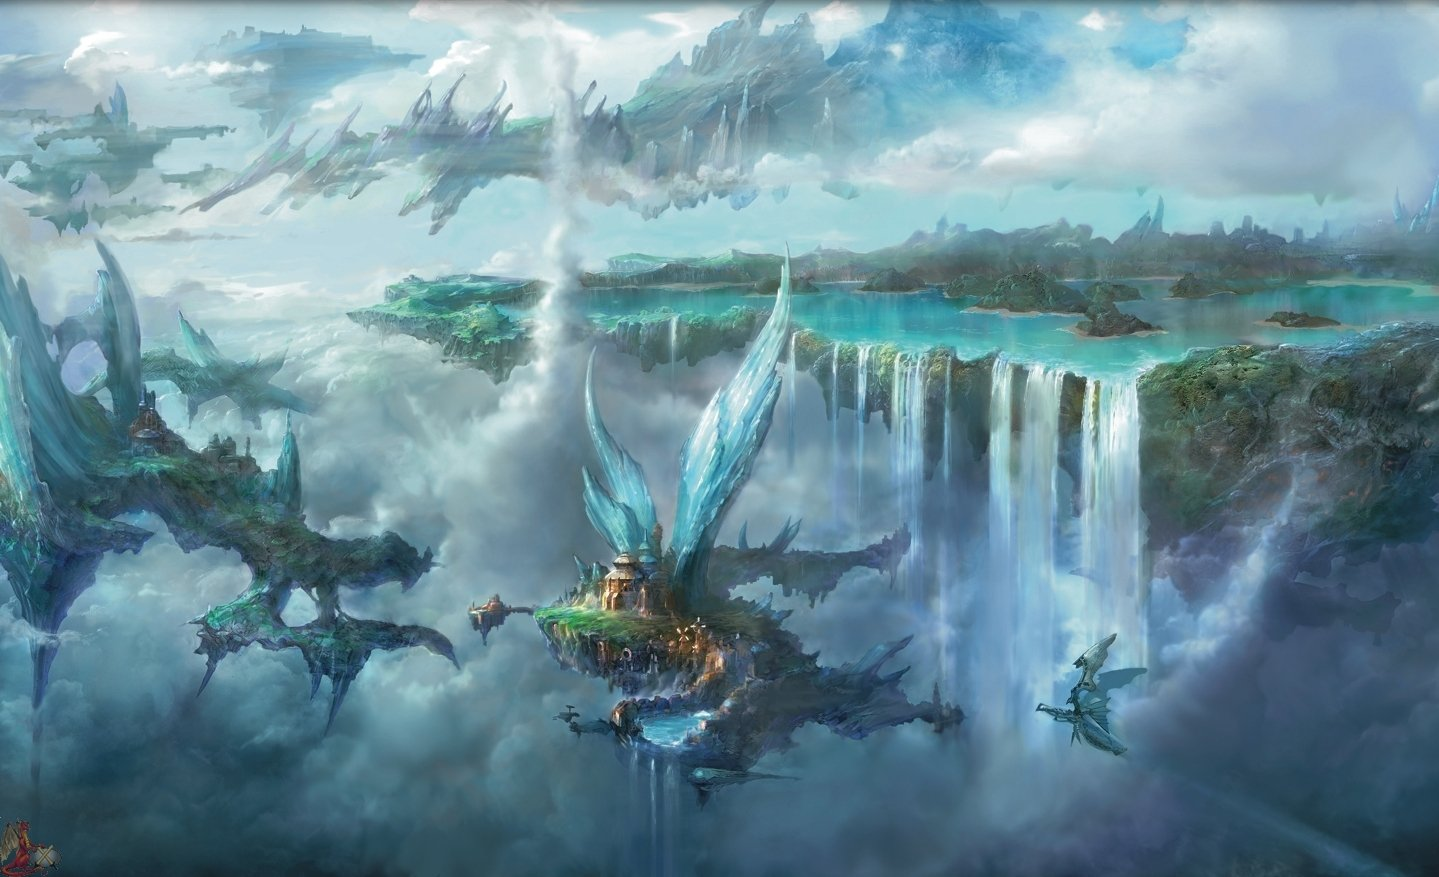 Final Fantasy XII Wallpaper And Background Image 1439x877 ID384050 Wallpaper Abyss